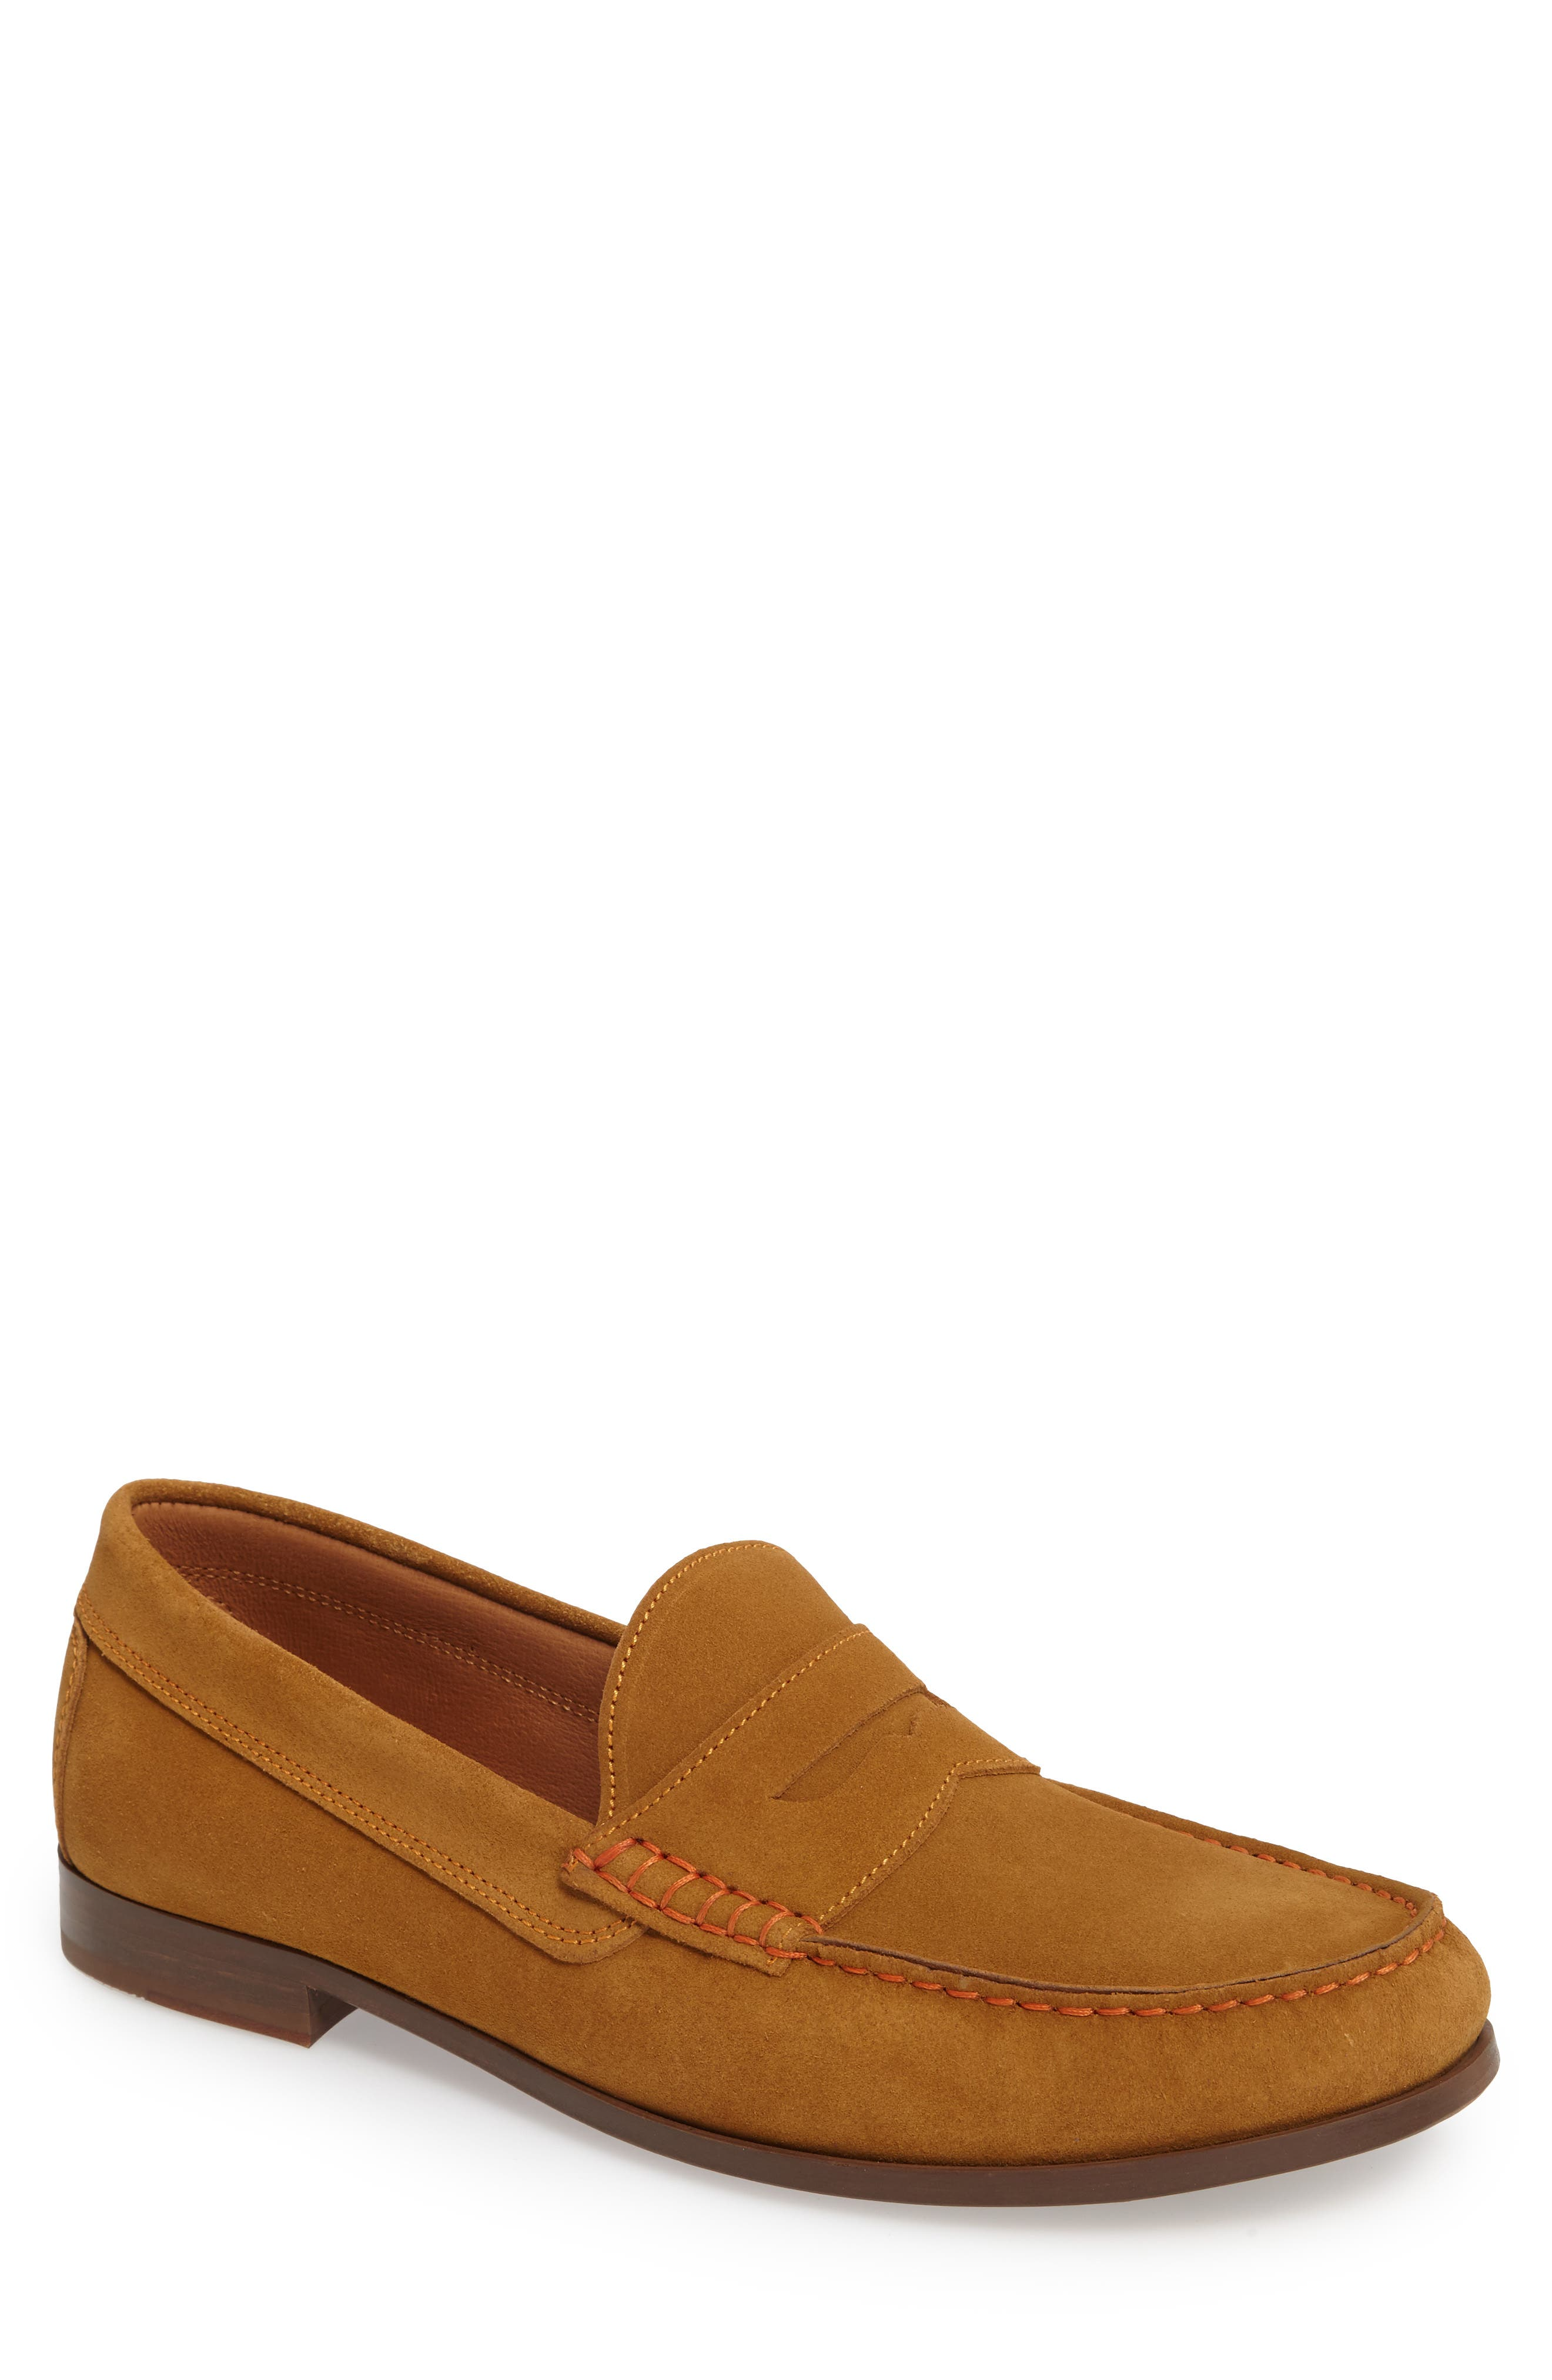 Nicola Penny Loafer,                             Main thumbnail 7, color,